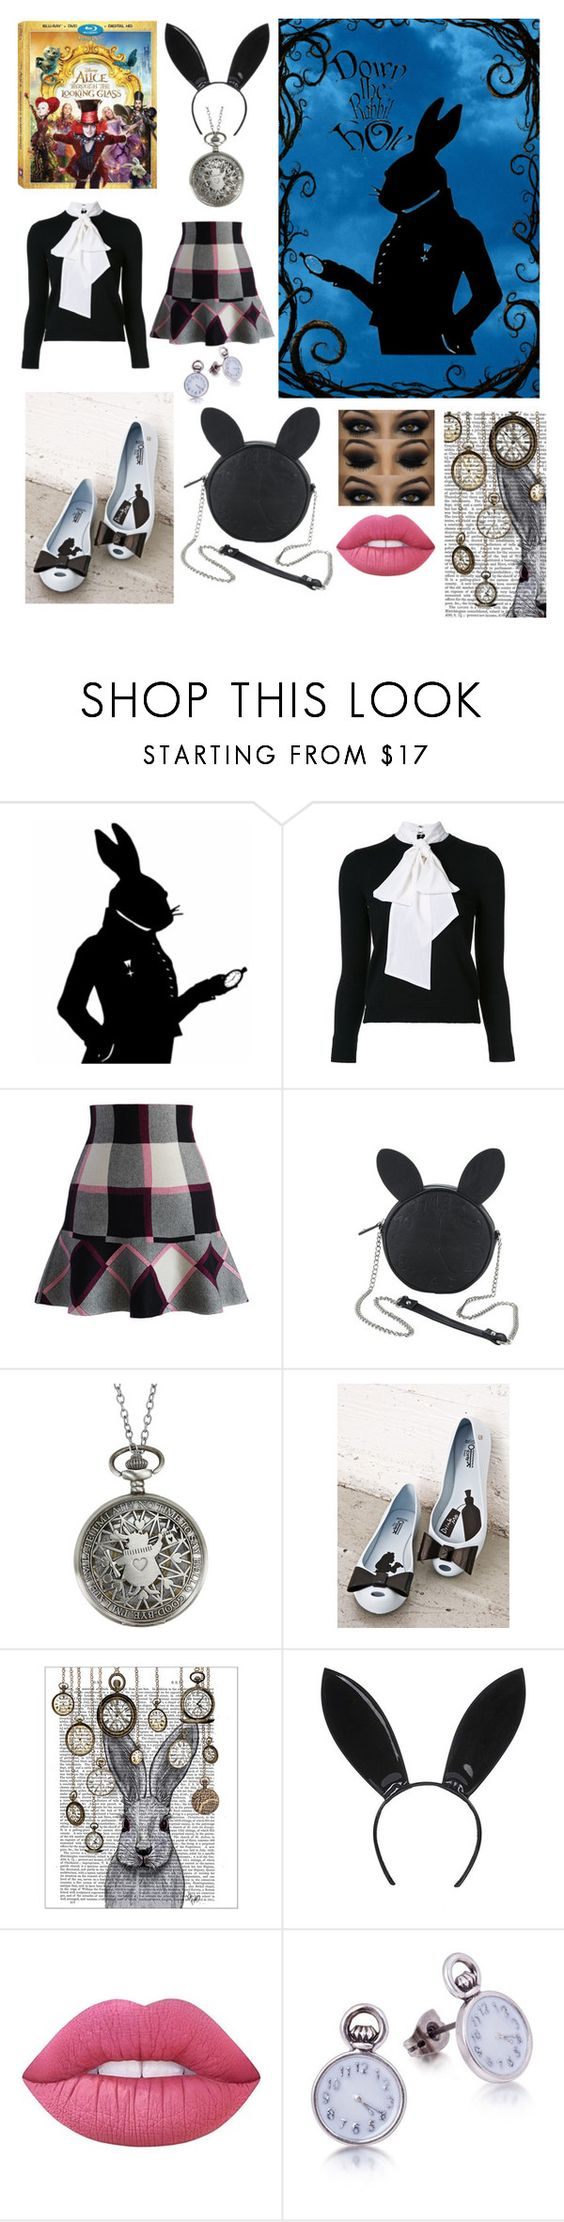 """""""Through the Looking Glass: Rabbit"""" by whatisshewearing ❤ liked on Polyvore featuring Alice + Olivia, Chicwish, Disney, Melissa, FabFunky, Topshop, Lime Crime, contestentry and DisneyAlice"""